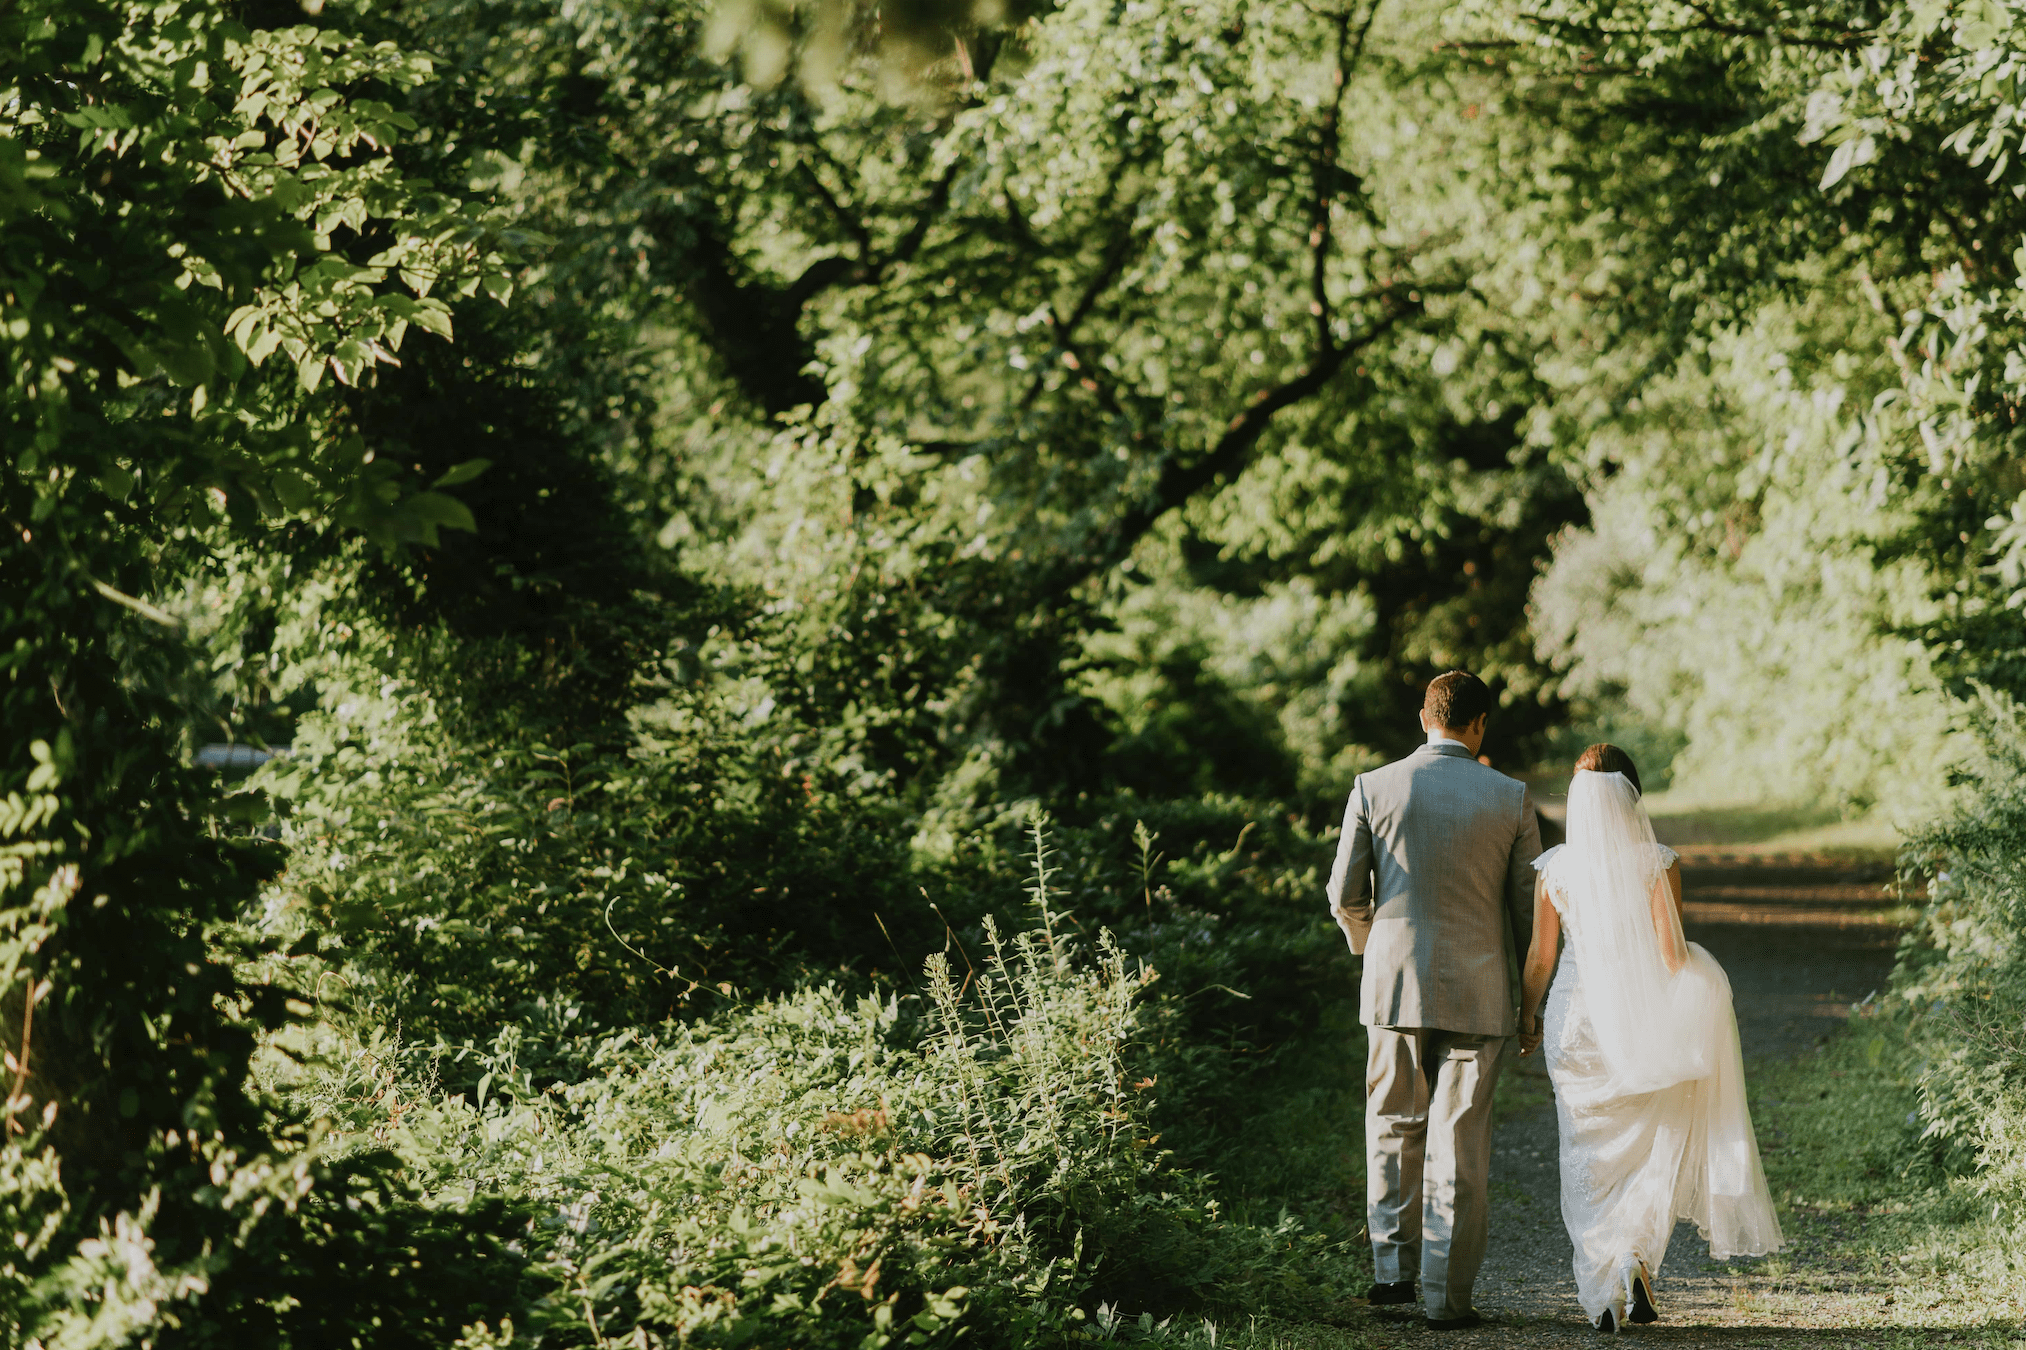 Choose a green place for your wedding: the setting's natural beauty makes purchasing lots of additional decorations unnecessary.